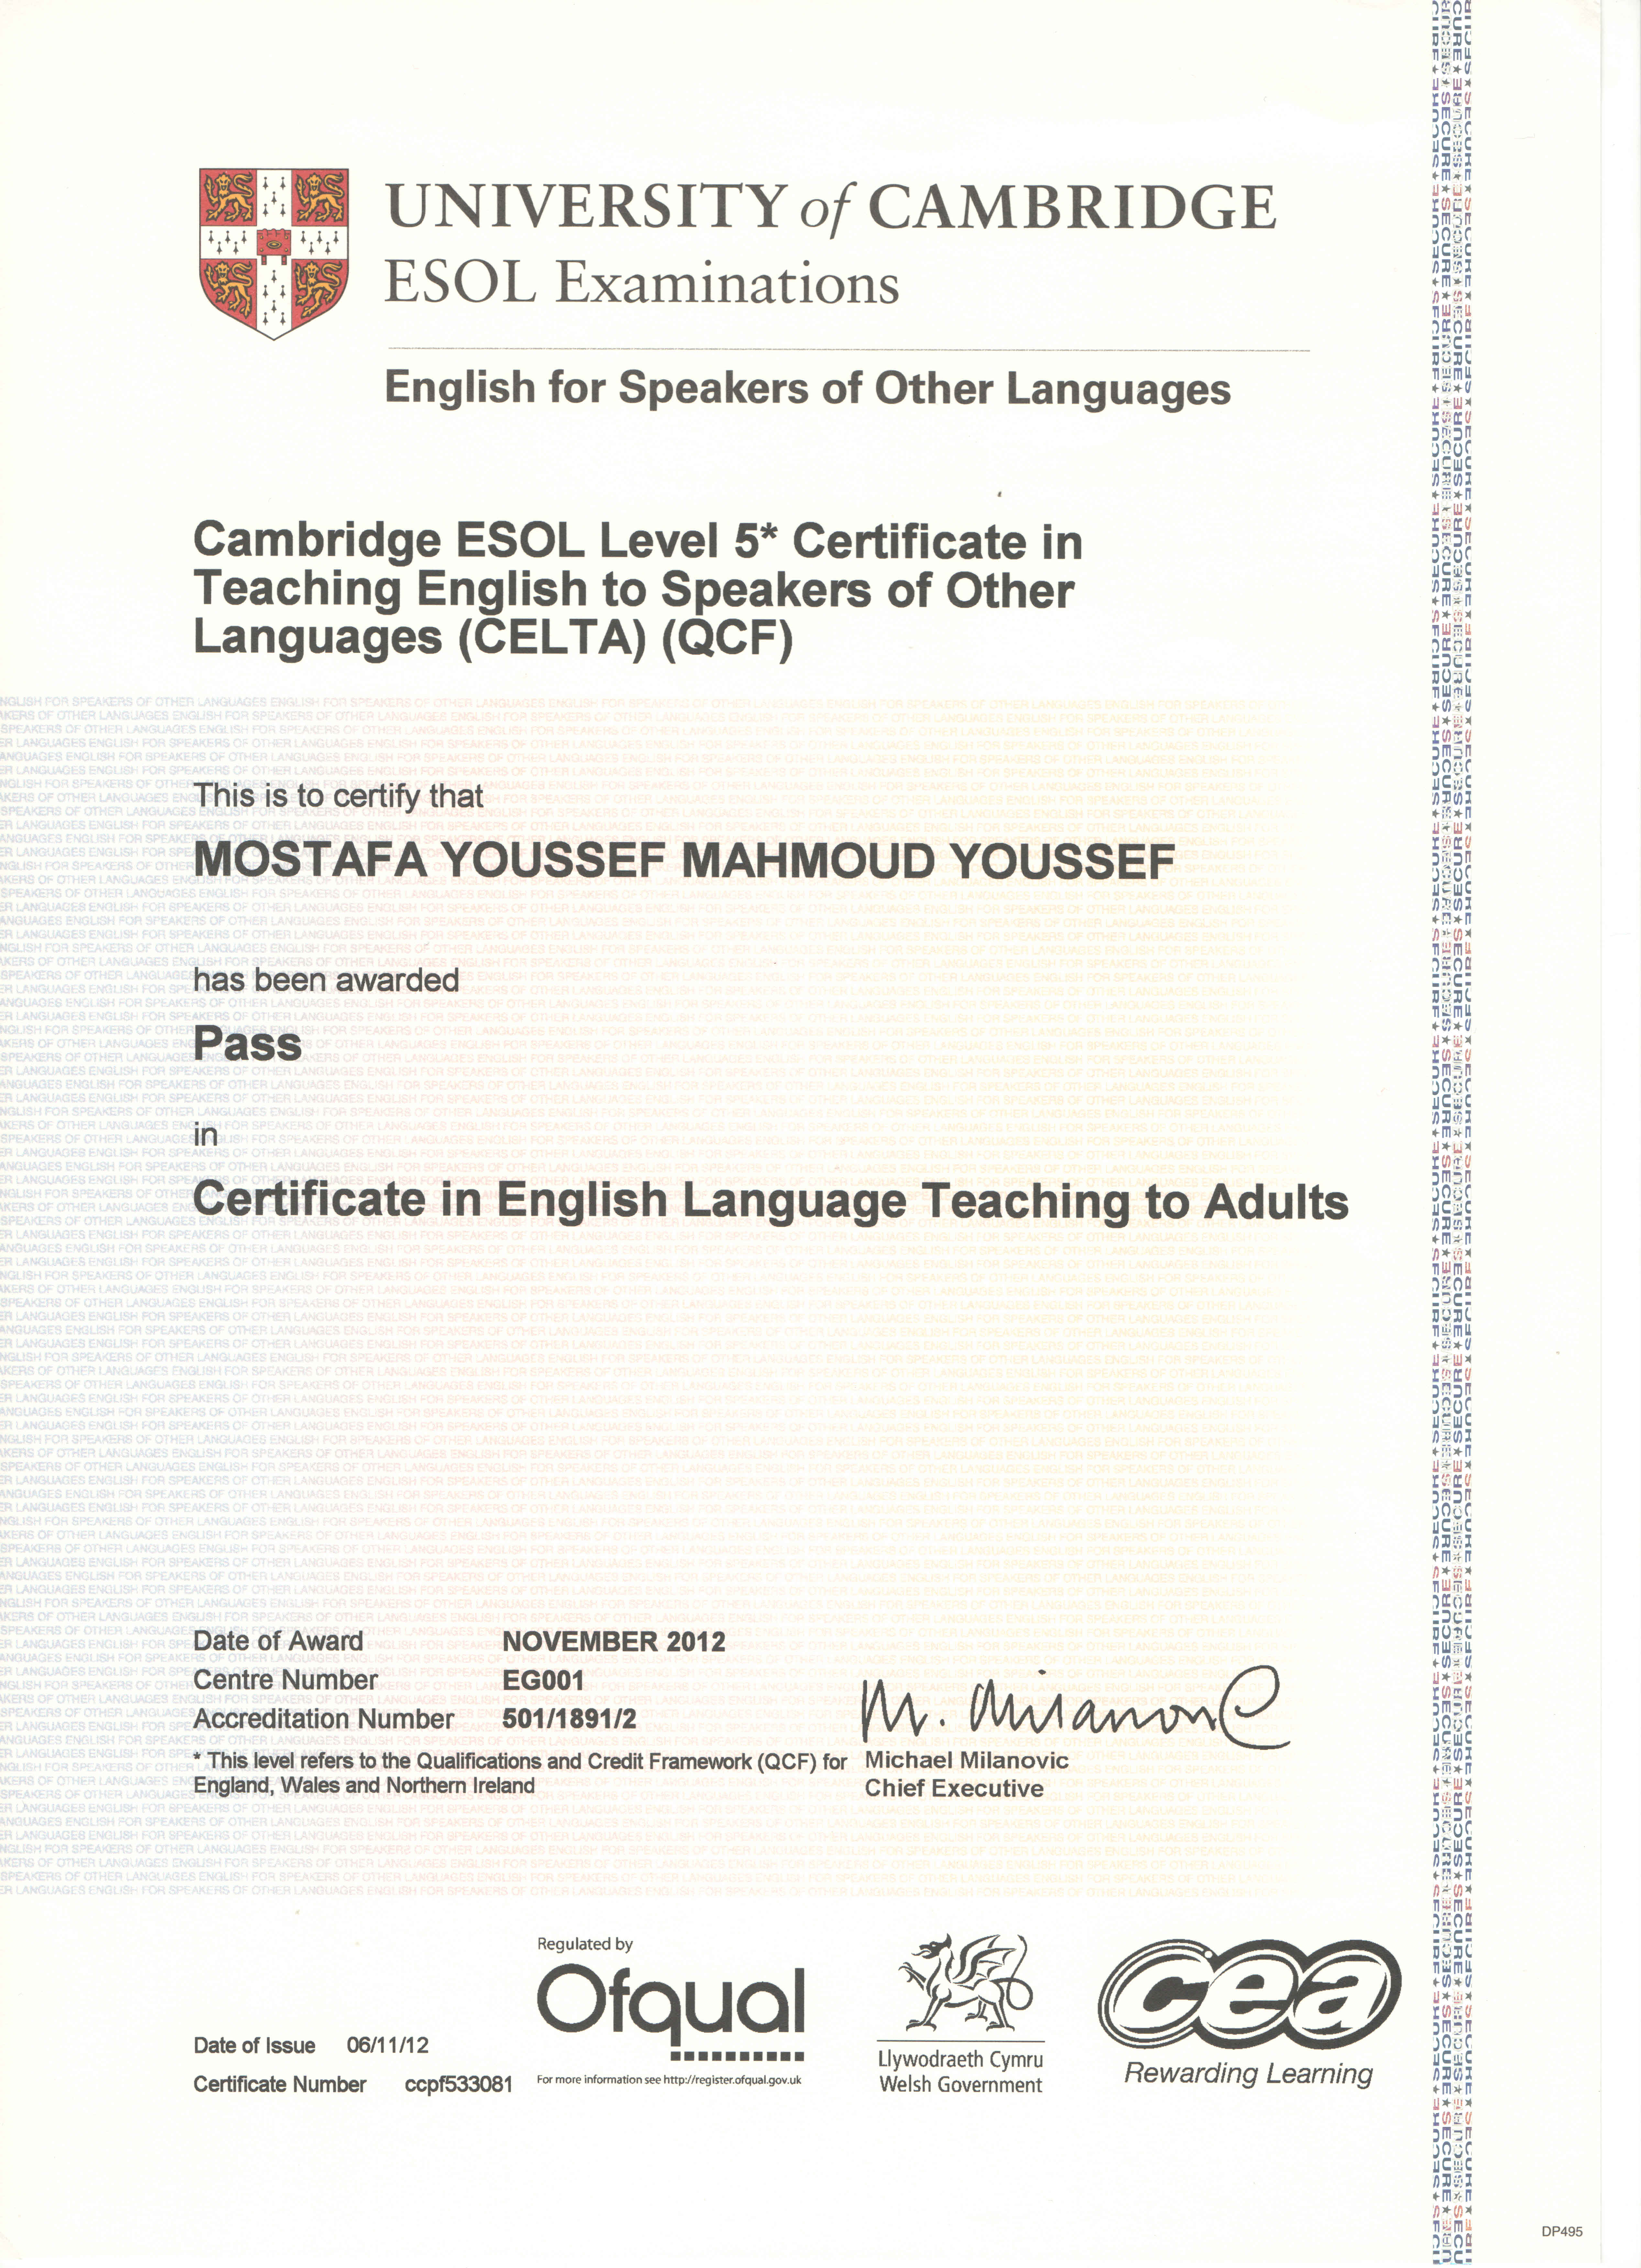 Celta wikipedia cambridge celta certificate 1betcityfo Images